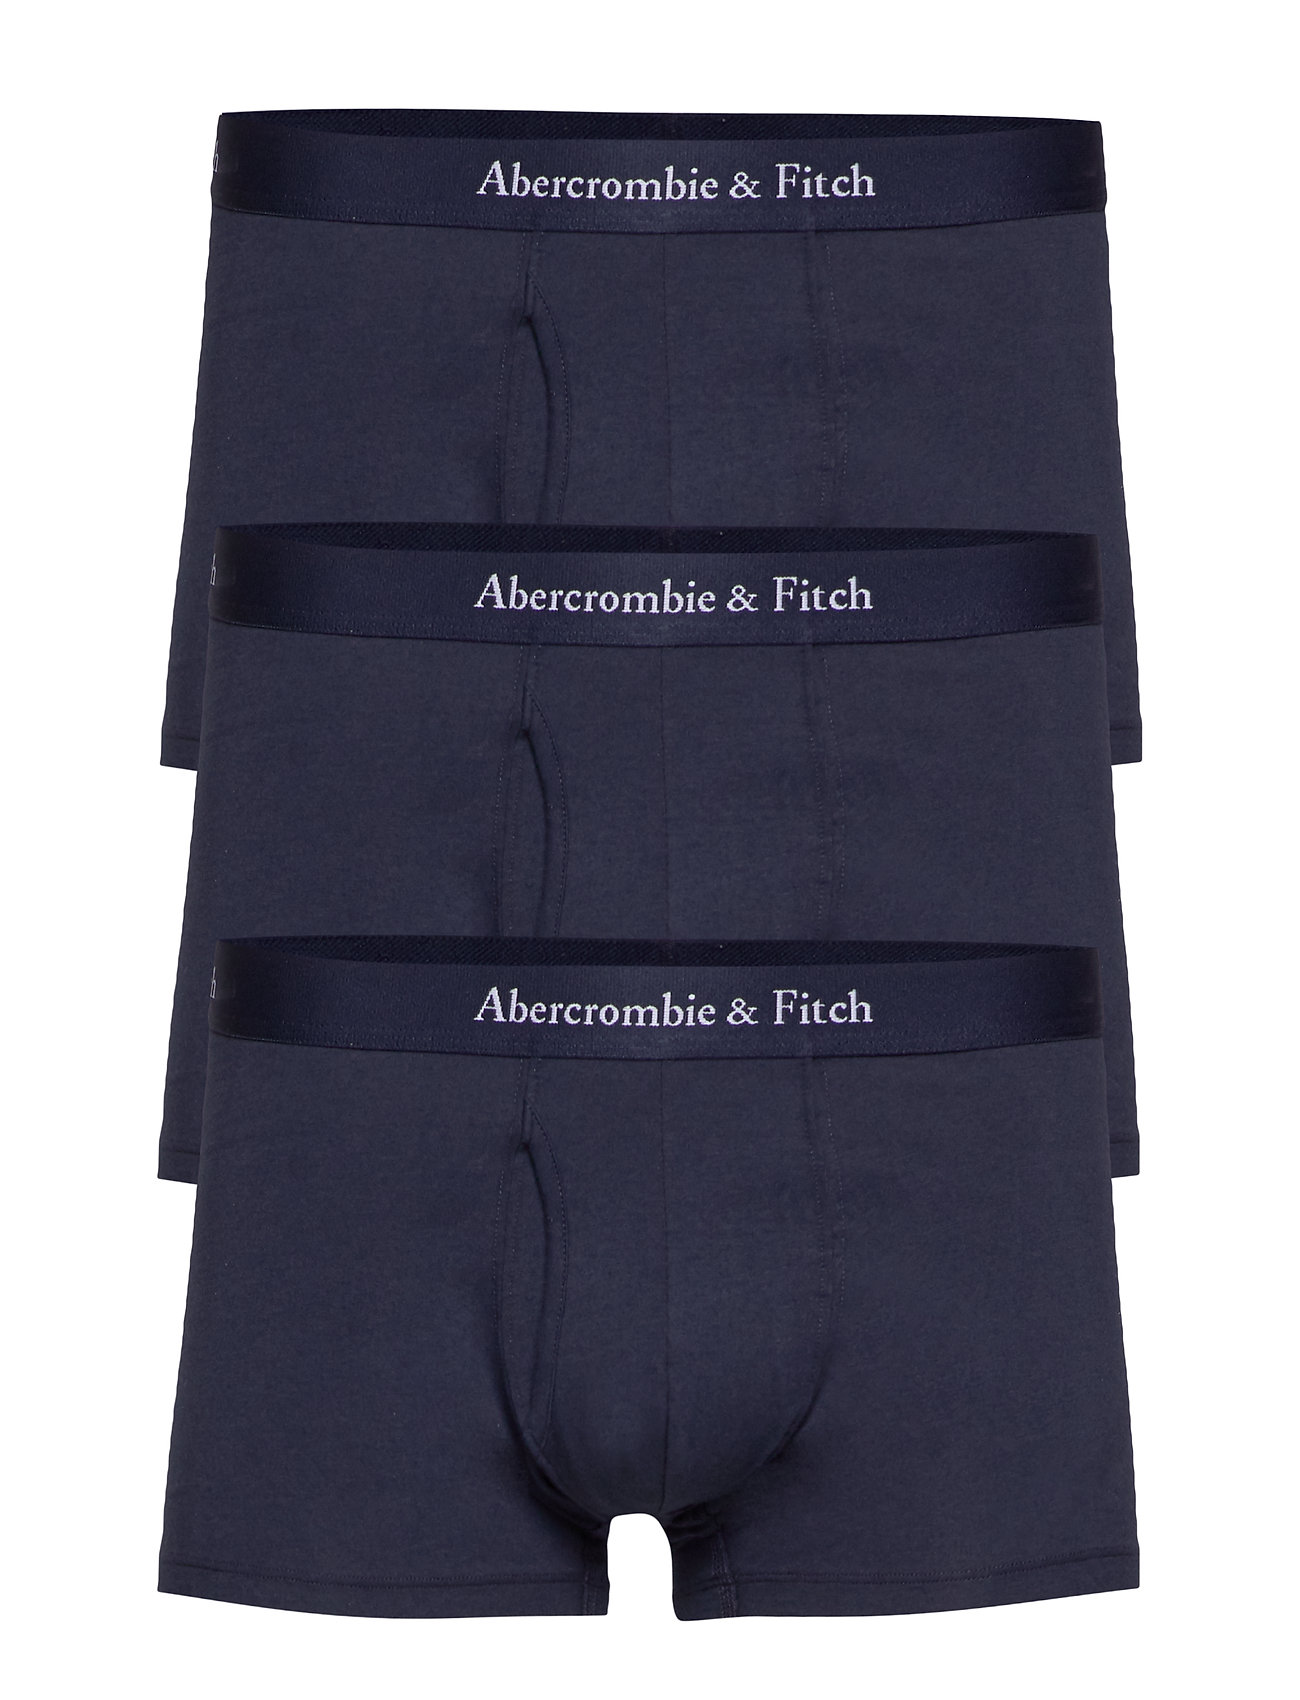 Abercrombie & Fitch Trunk Multipack - NAVY DD